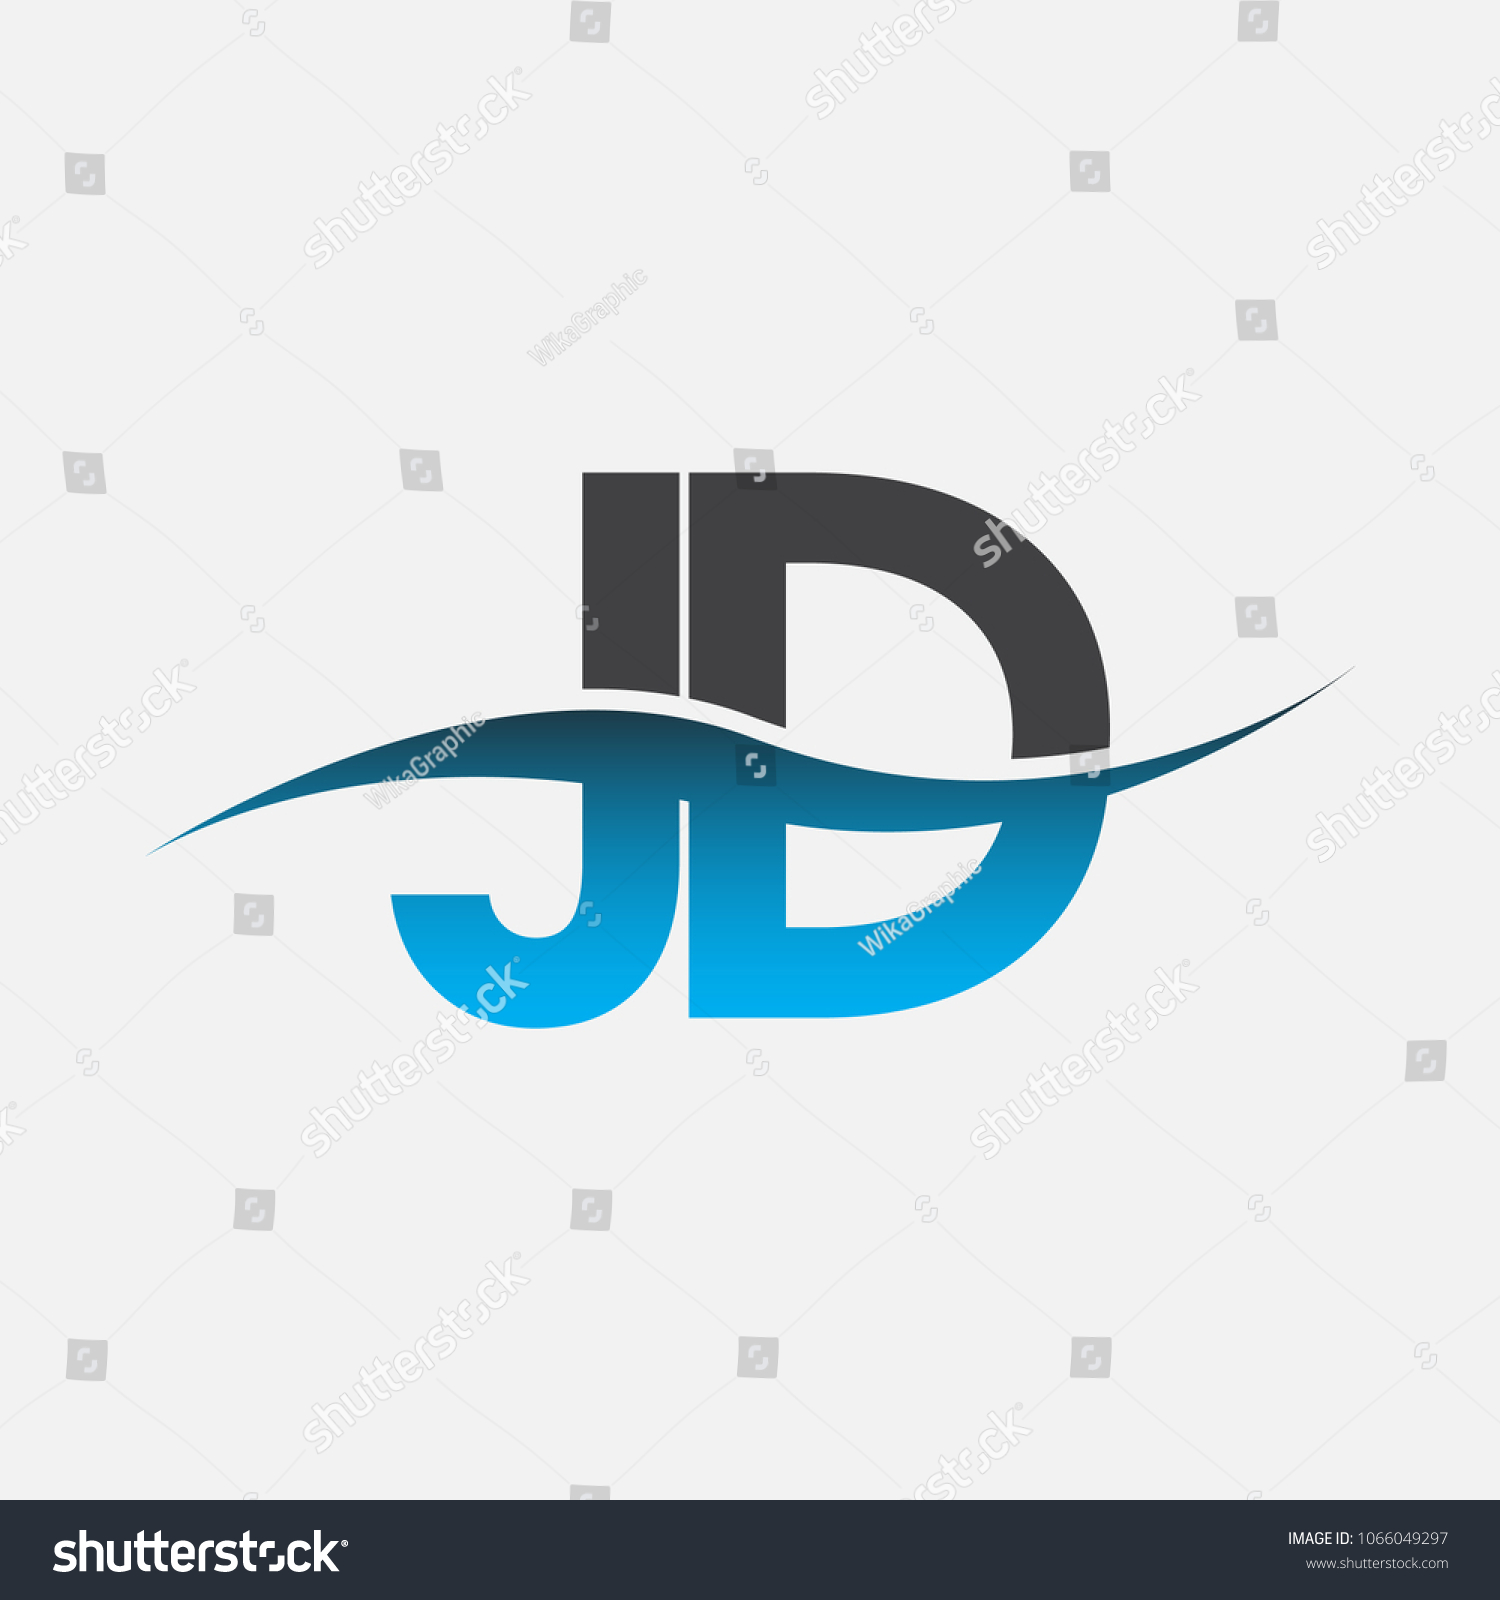 initial letter logo jd company name stock vector royalty free 1066049297 shutterstock